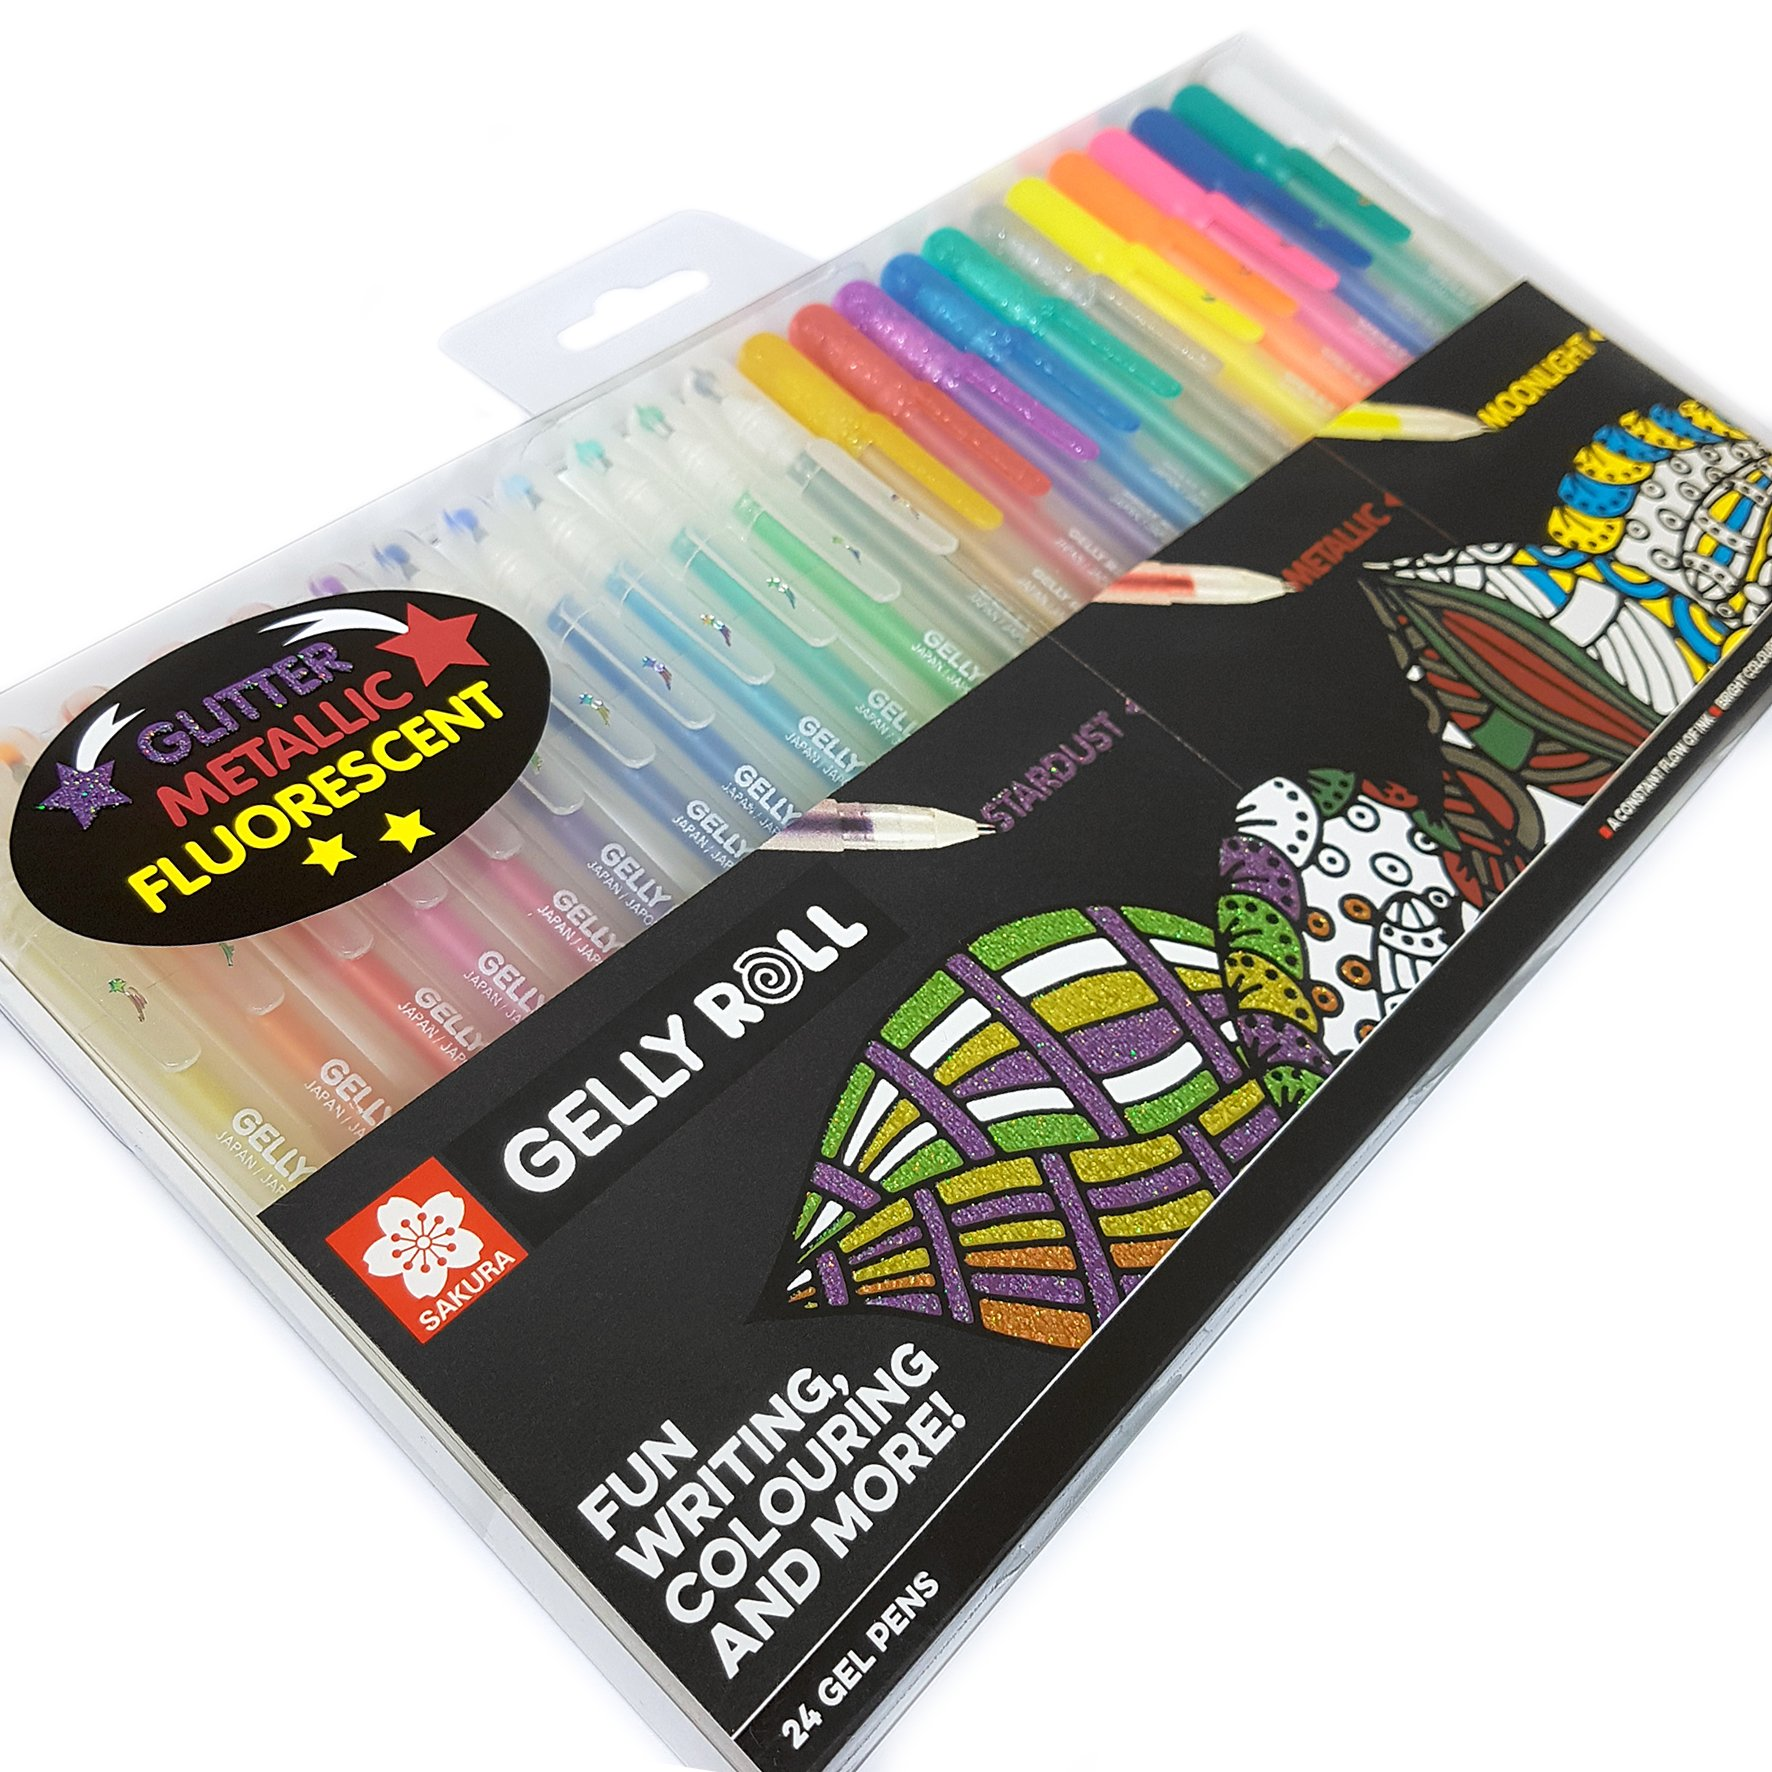 Sakura Gelly Roll - Sparkling, Metallic and Fluorescent Gel Pen Mixed Set - Box of the 24 Most Beautiful Colours - XPGBMIX24 by Sakura (Image #5)